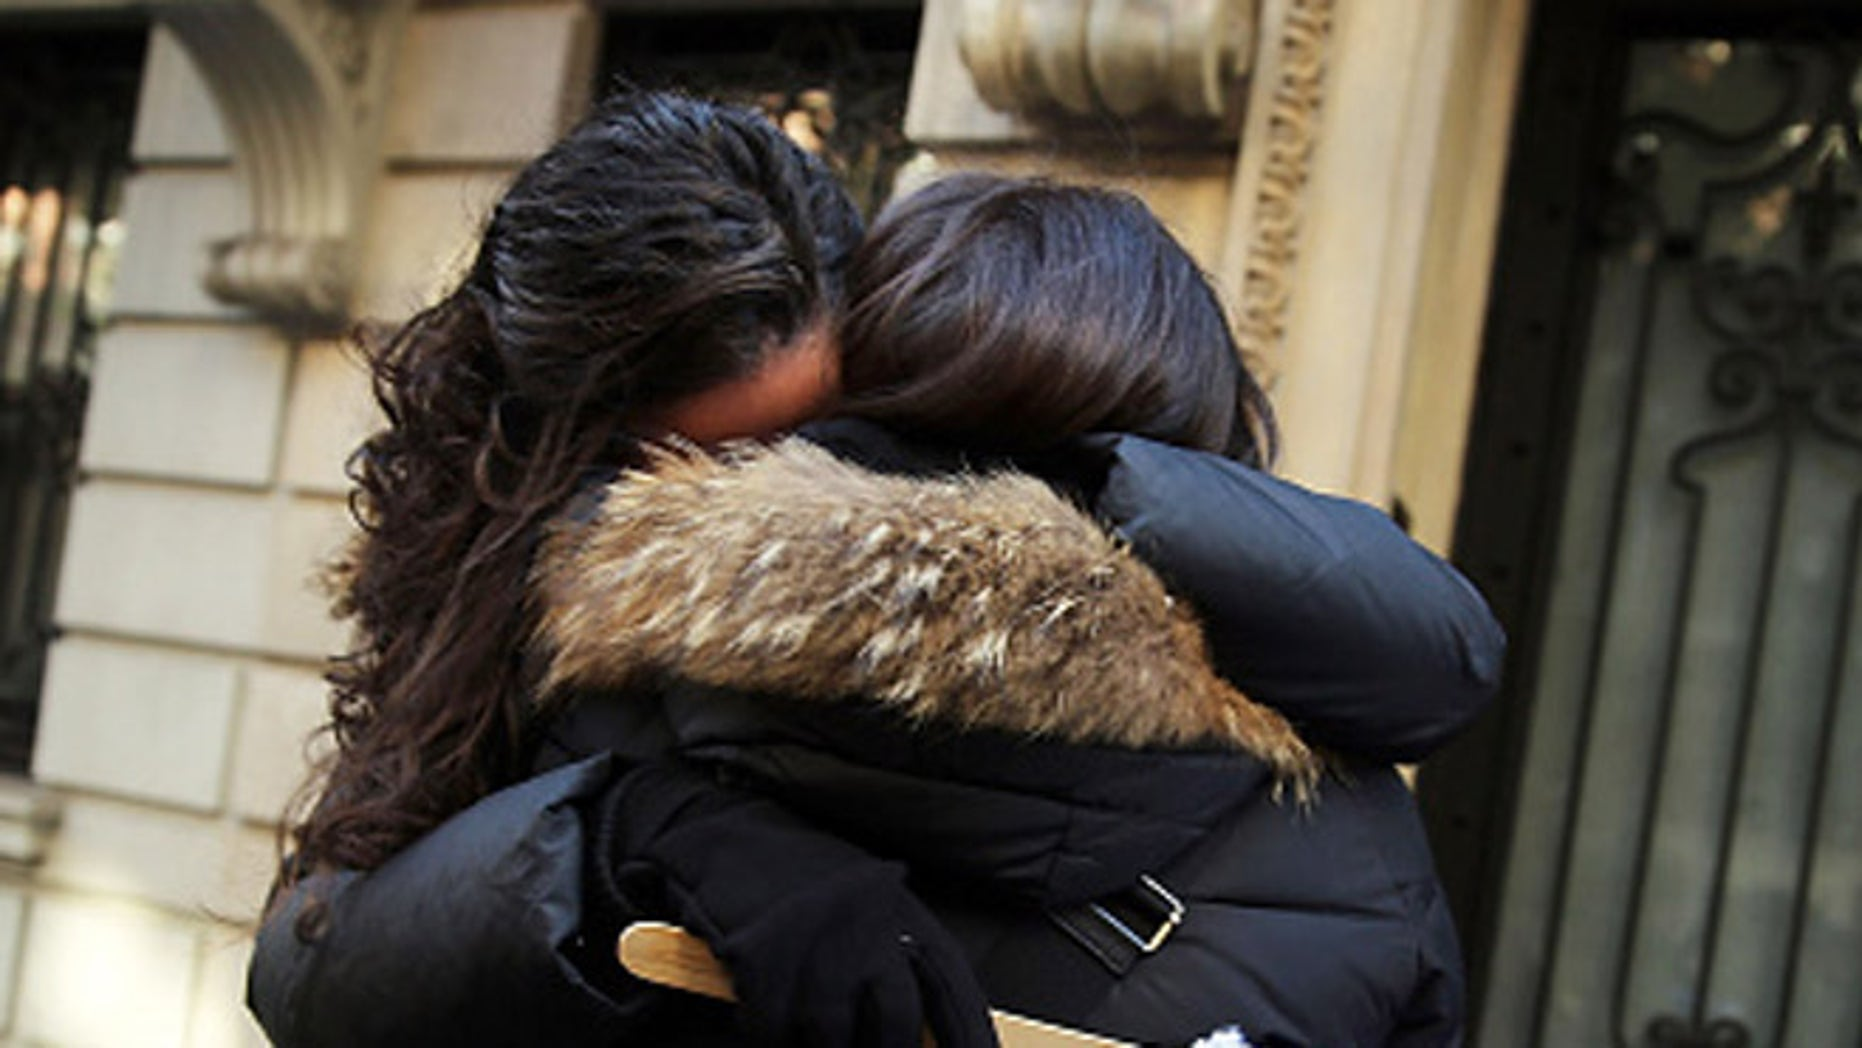 NEW YORK, NY - NOVEMBER 18:  Two women hug at a pro-Israele demonstration in front of the Permanent Observer Mission of the State of Palestine to the United Nations following the death of four men who were reportedly killed by two armed Palestinians on November 18, 2014 in New York City. According to reports, the two men stormed a synagogue in an ultra-Orthodox Jewish neighborhood in West Jerusalem during morning prayers, killing four rabbis, three from the U.S. and one from Britain. There has been a surge of violence in Jerusalem in recent weeks as both Israelis and Palestinians claim ownership of holy sites and land.  (Photo by Spencer Platt/Getty Images)